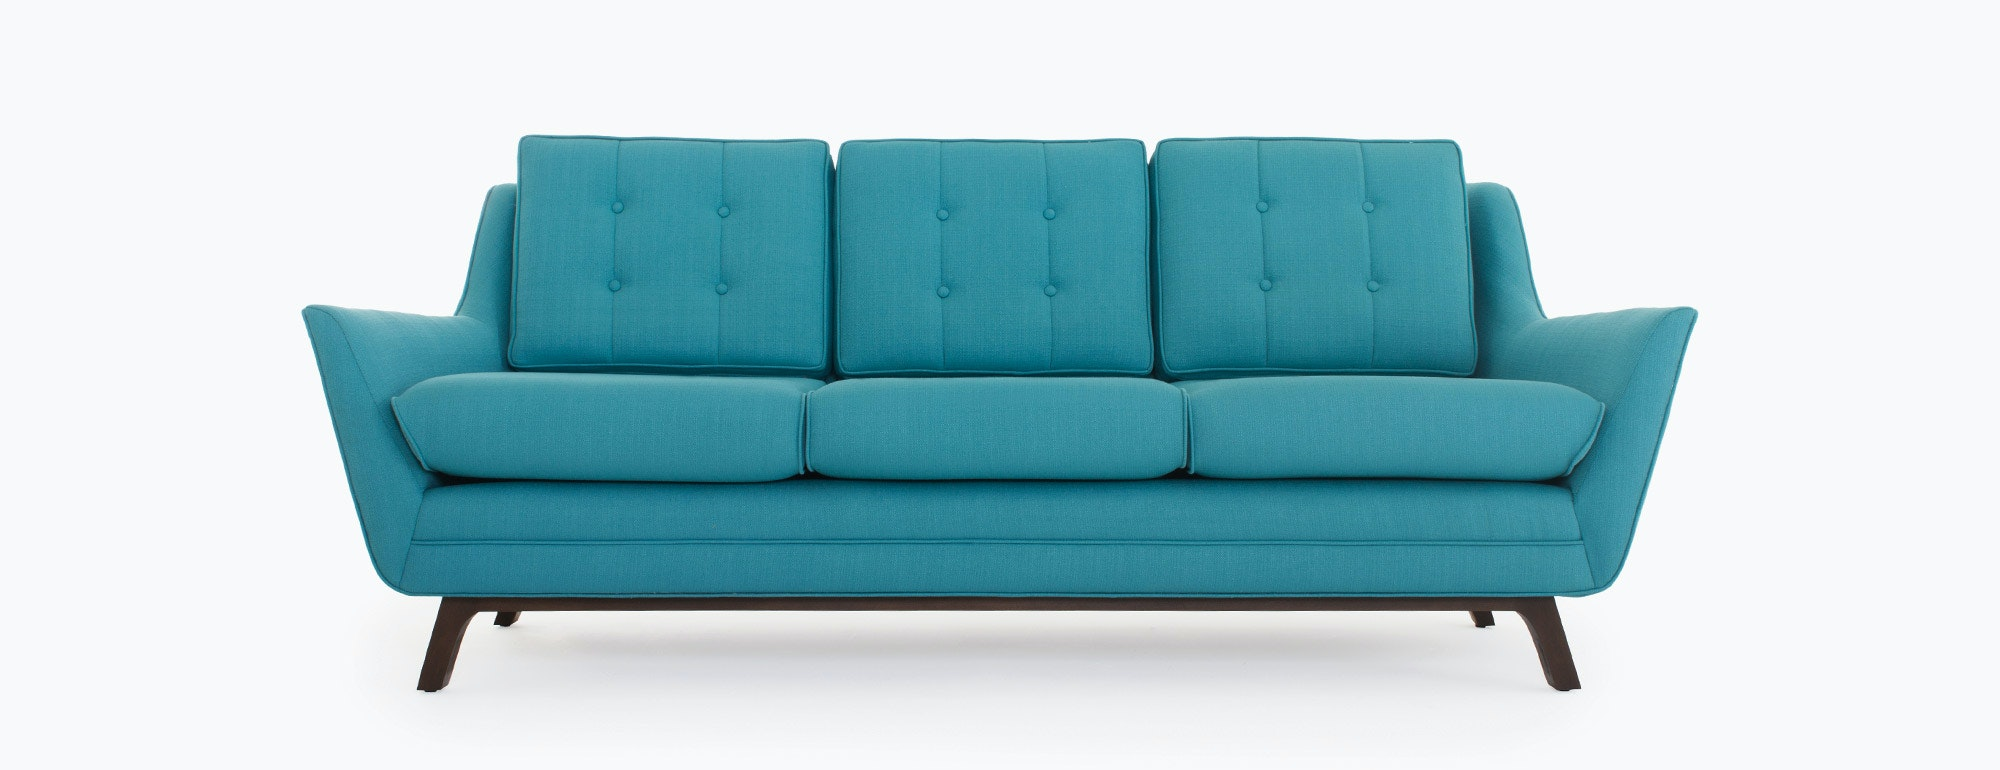 Eastwood Sofa Joybird : hero eastwood sofa 1 from joybird.com size 2000 x 770 jpeg 157kB